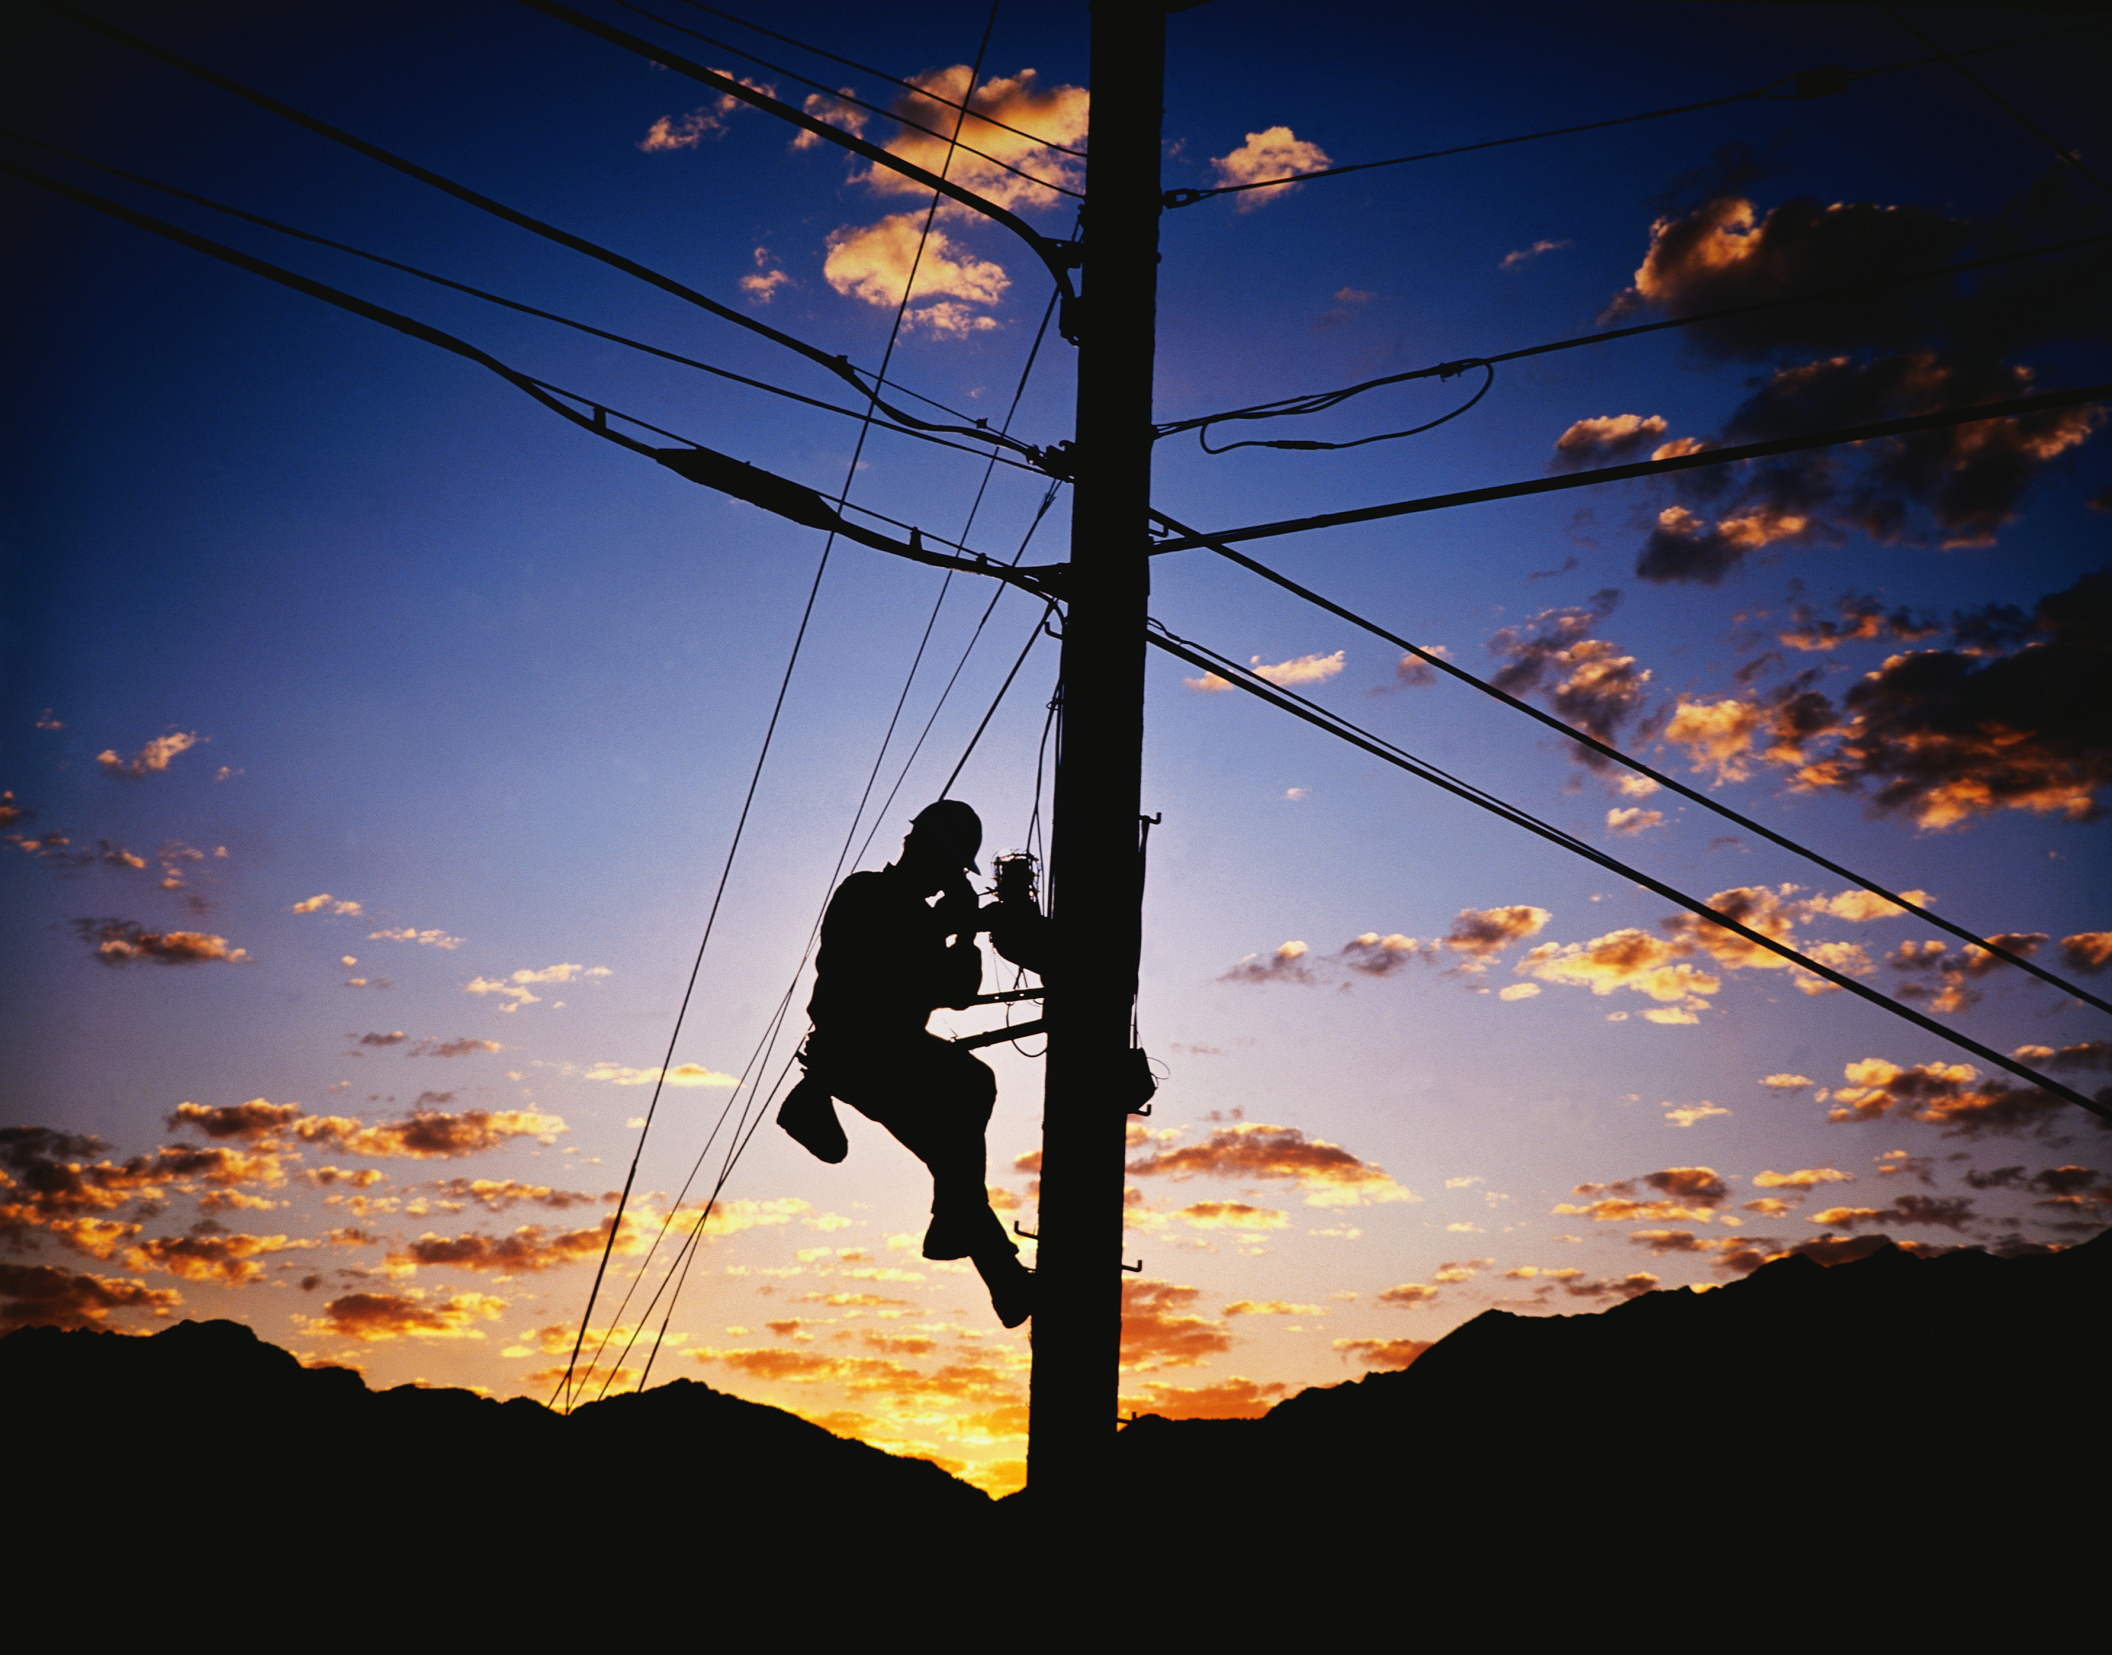 Silhouette of Lineman and Telephone Pole